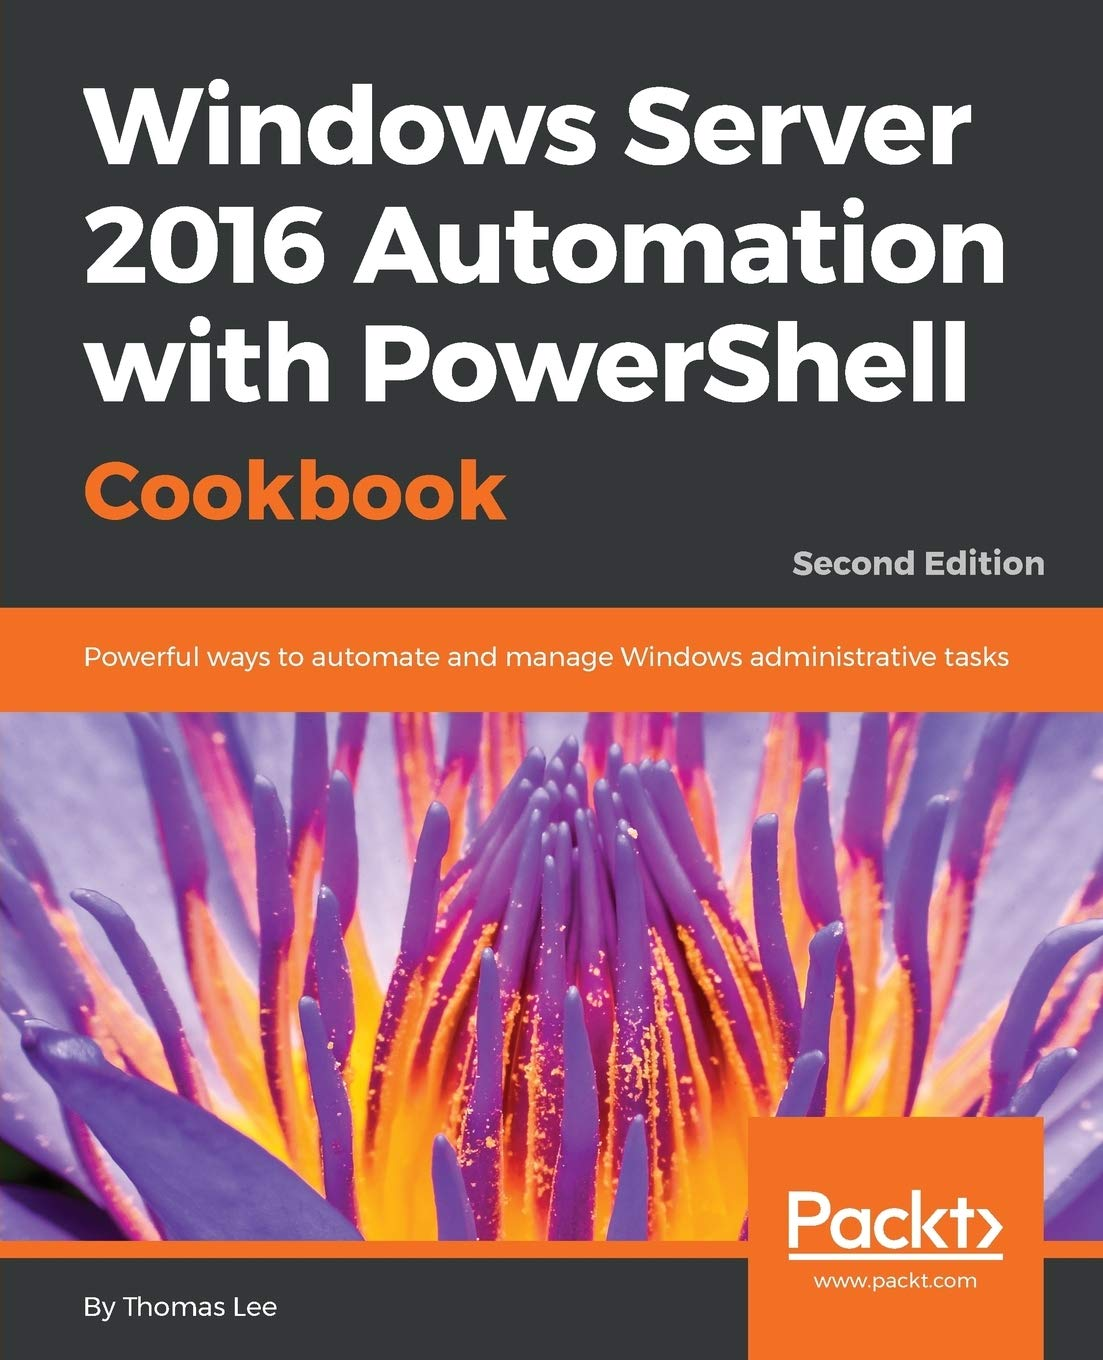 Download Windows Server 2016 Automation With PowerShell Cookbook - Second Edition: Automate Manual Administrative Tasks With Ease 